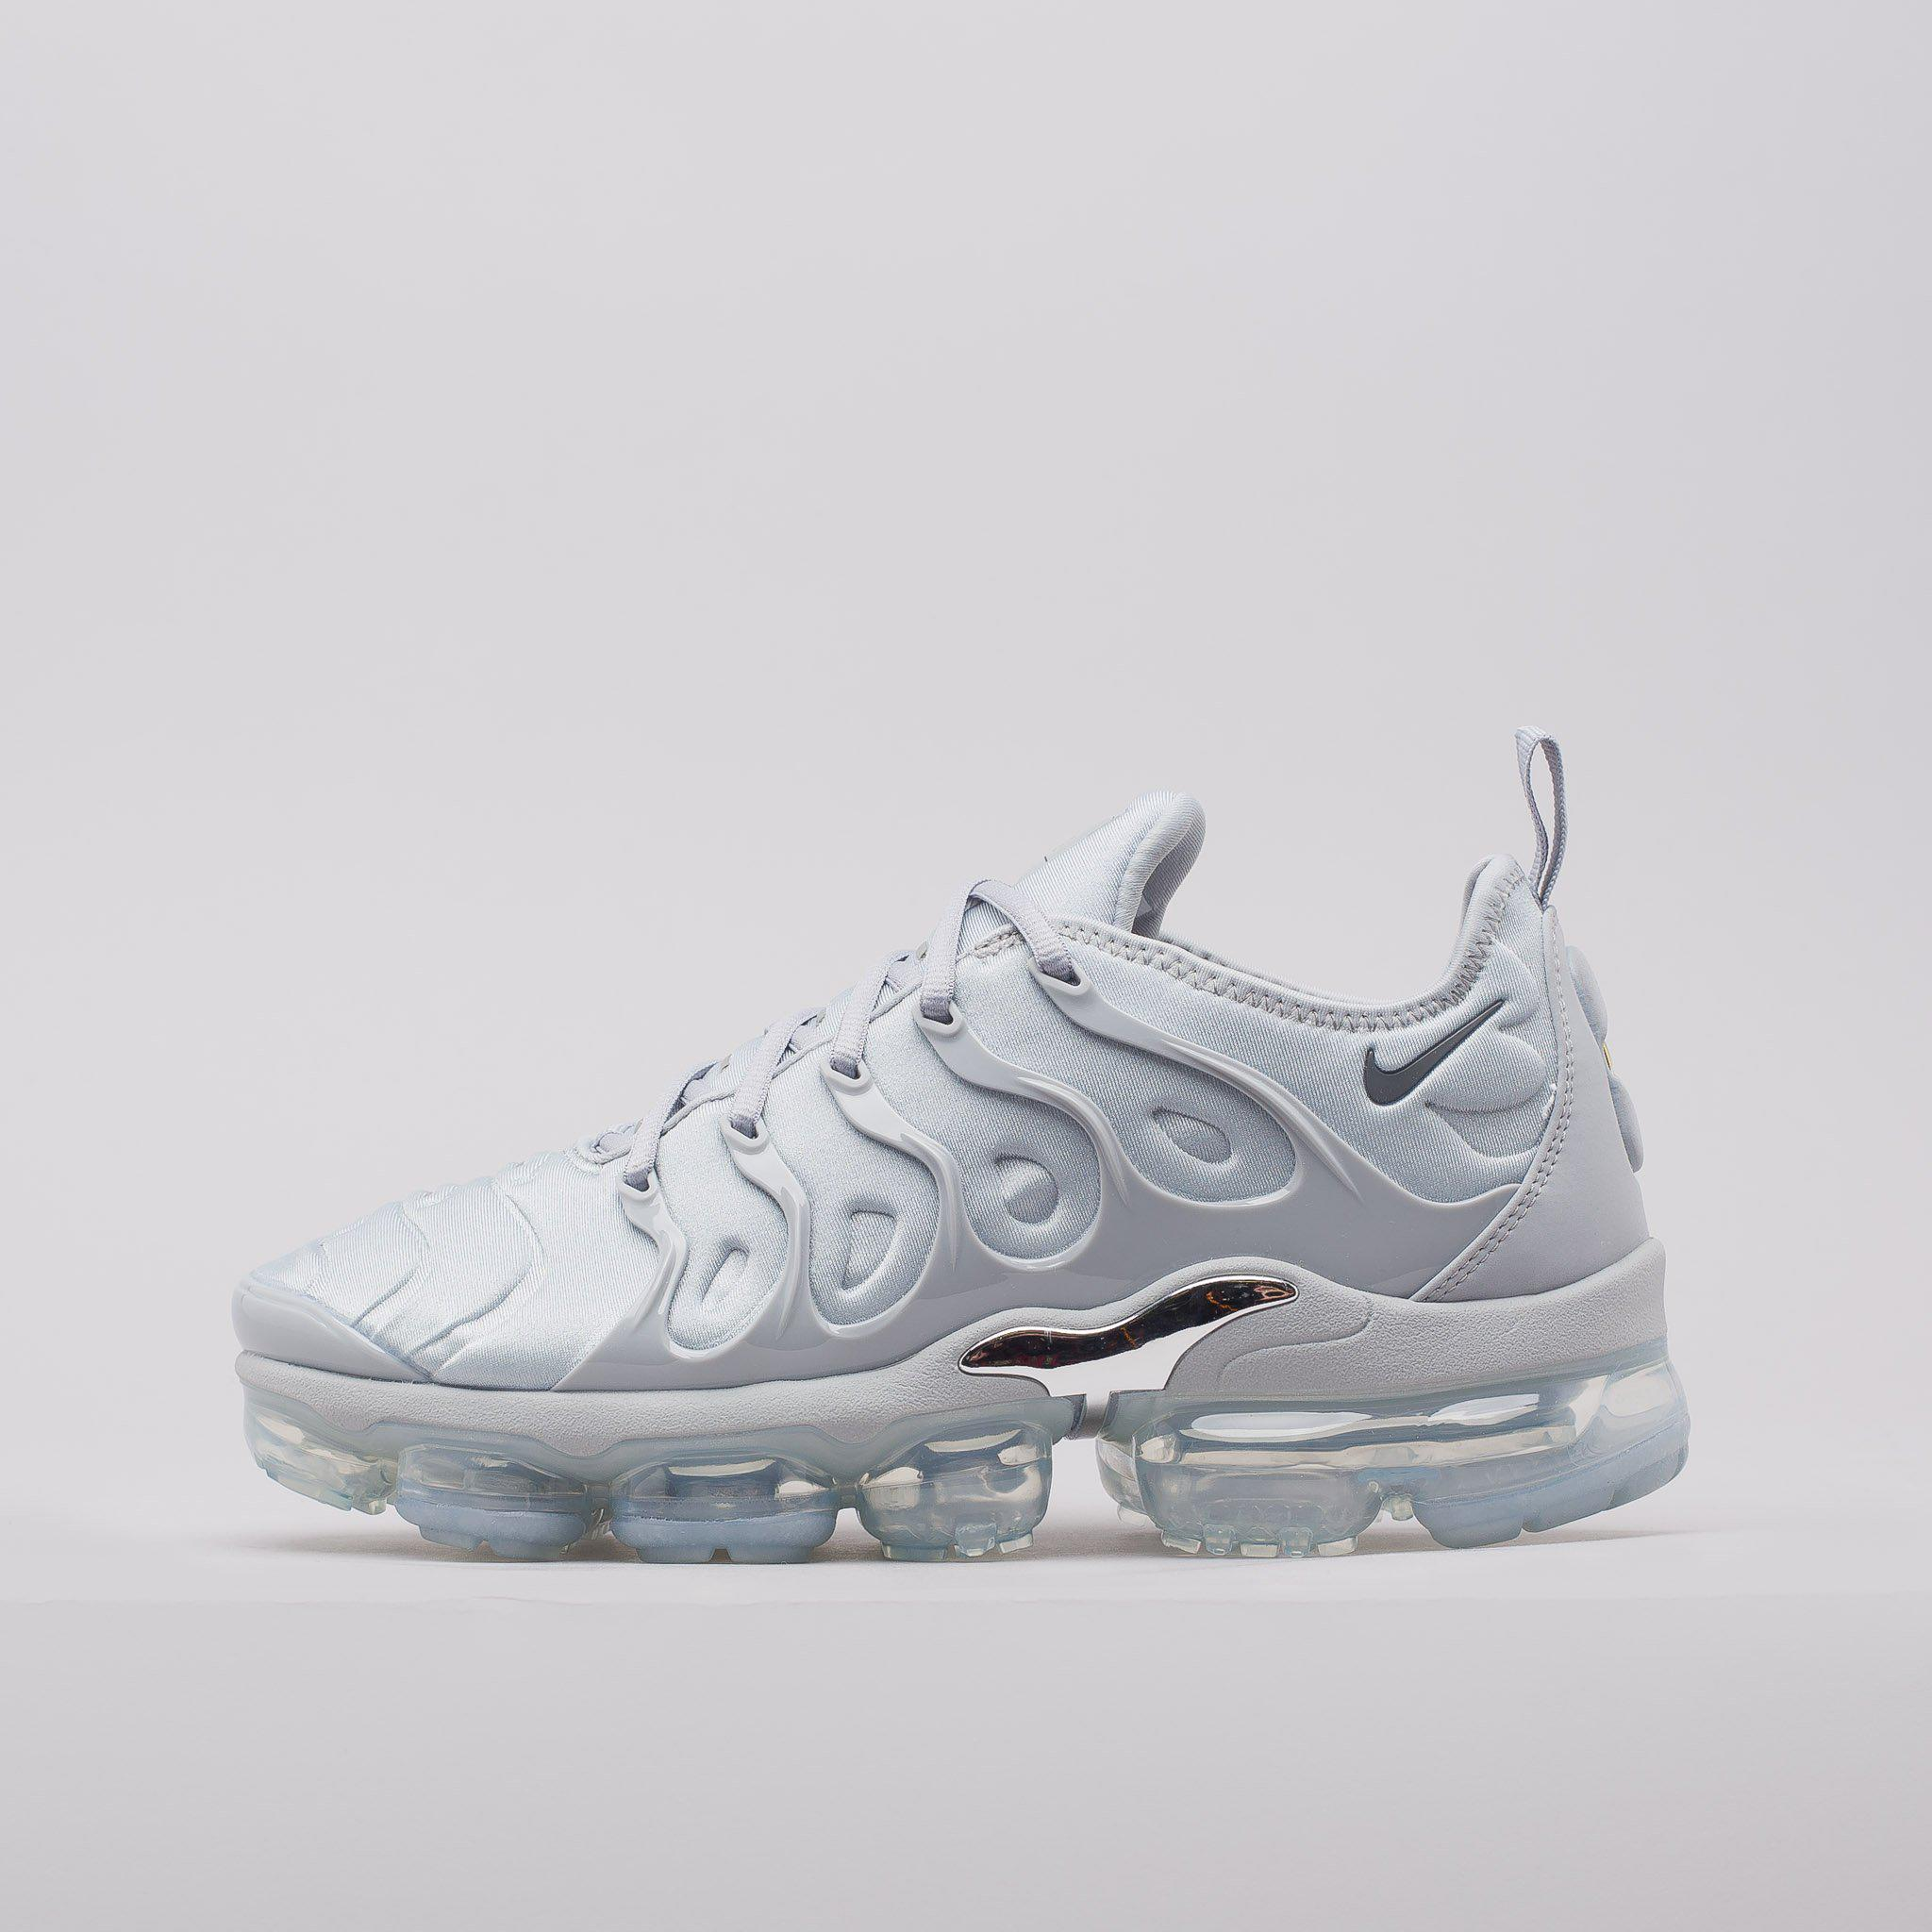 Lyst - Nike Air Vapormax Plus In Wolf Grey in Gray for Men 07c13fafb